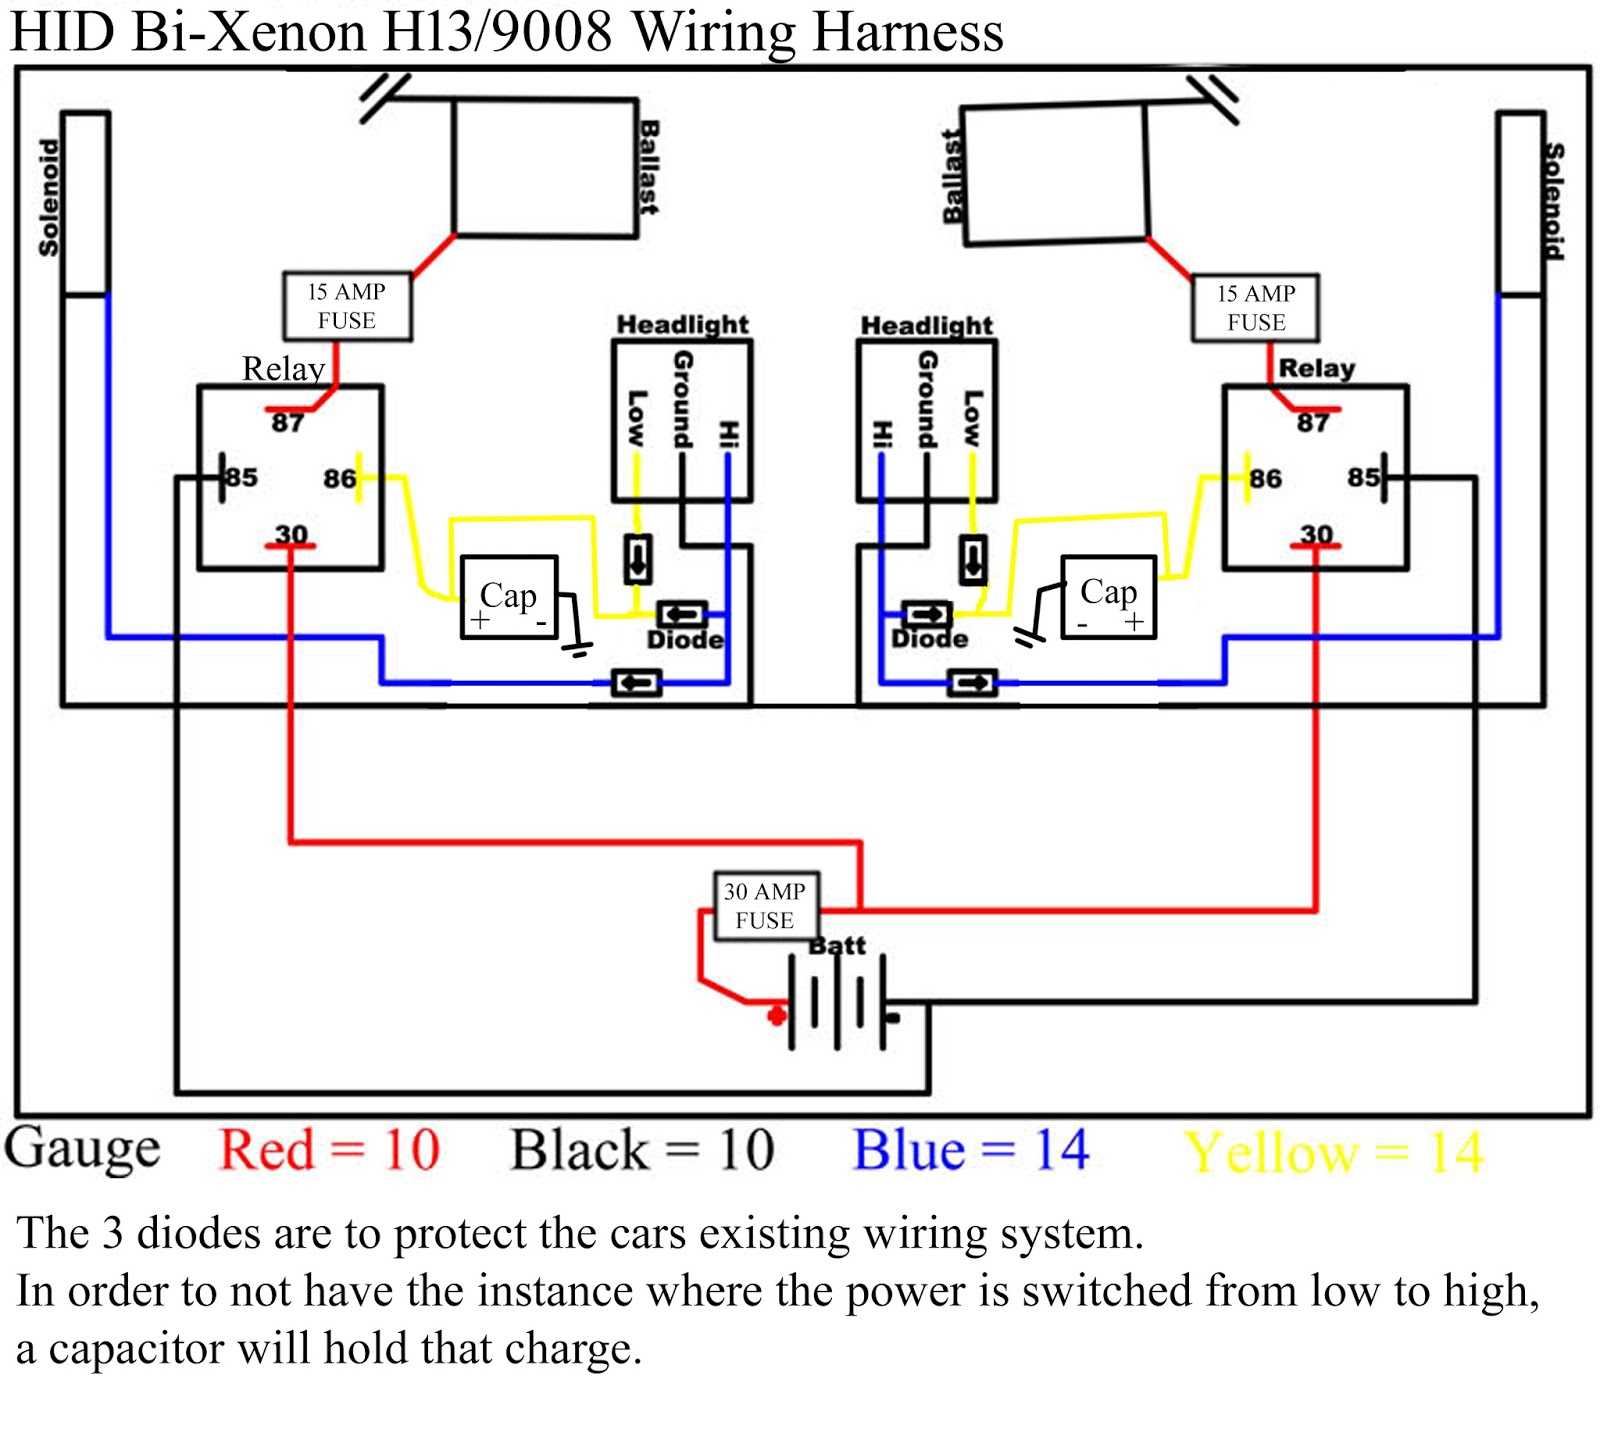 Hhr Retrofit With Lots Of Questions Hidplanet The Official Car Wiring Diagram I Would Like To Know If This Is Correct And What Values Should Use For Diodes Capacitors Gauge Wires